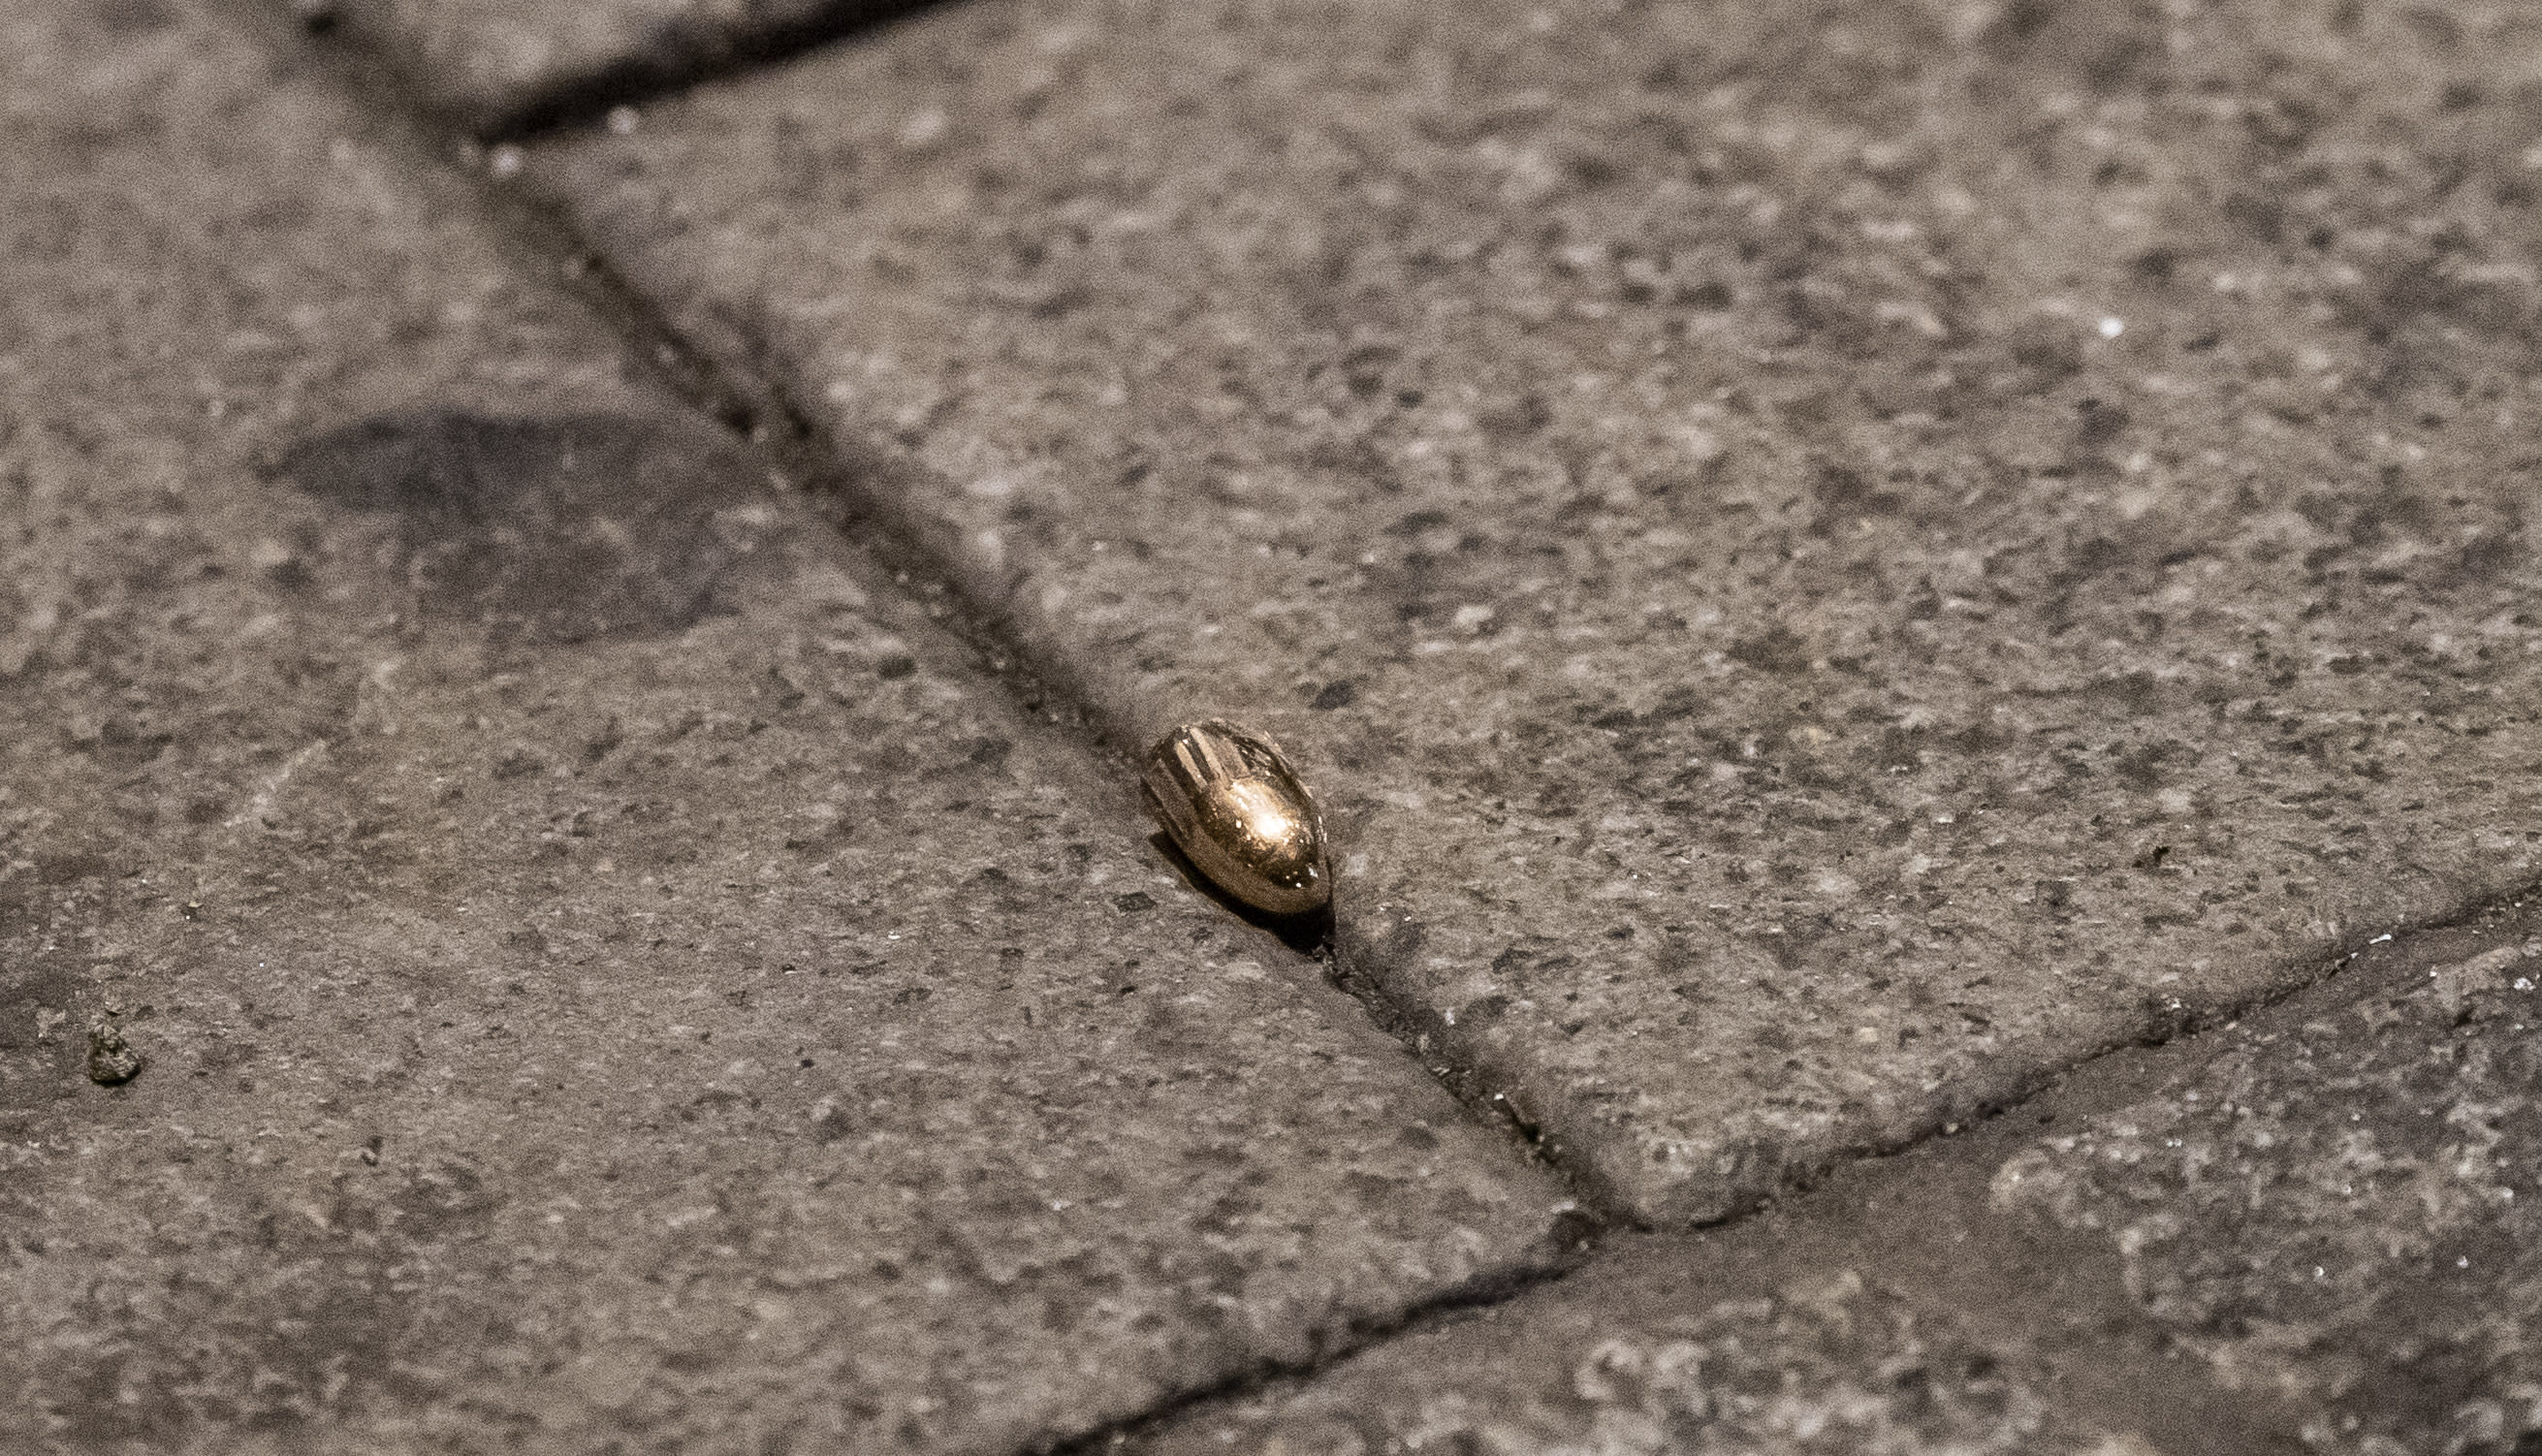 A bullet lies on the sidewalk near a restaurant at the scene of a shooting in central Hanau, Germany Thursday, Feb. 20, 2020. Eight people were killed in shootings in the German city of Hanau on Wednesday evening, authorities said. (Andreas Arnold/dpa via AP)